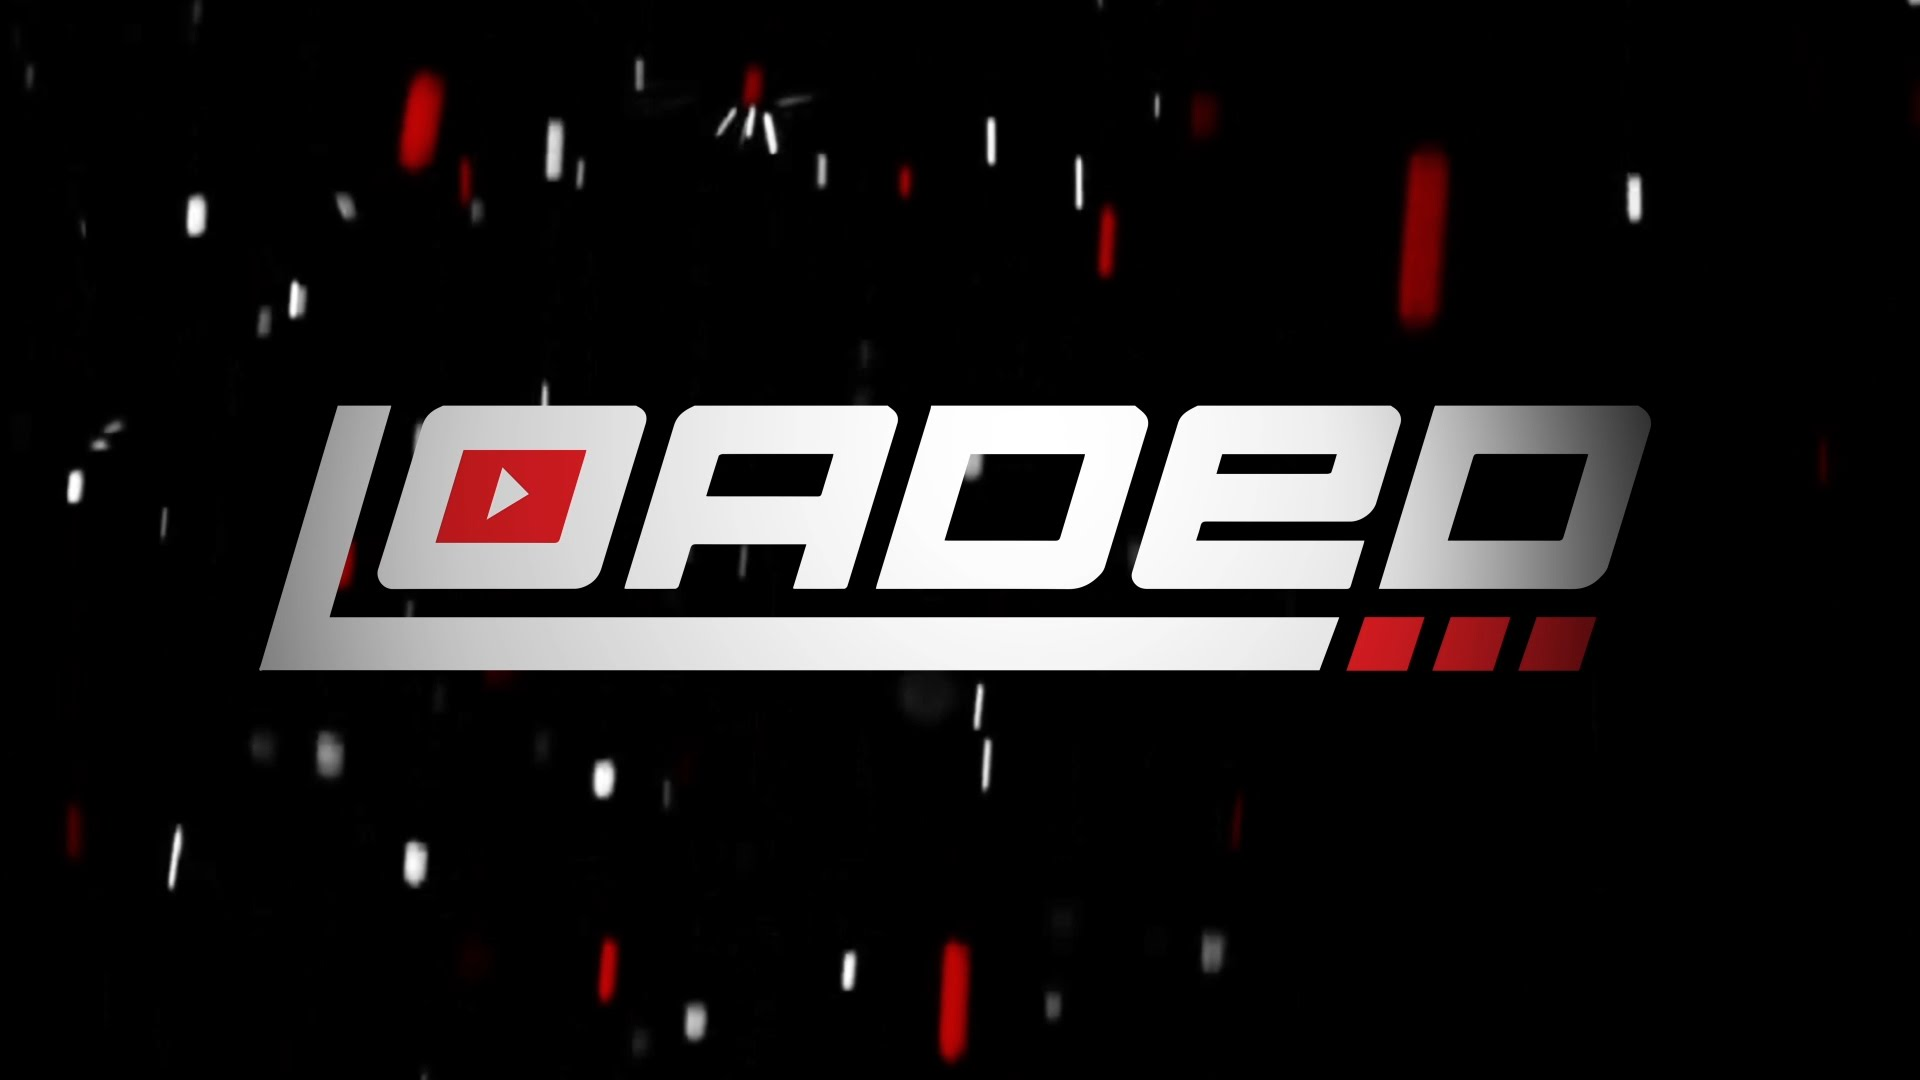 December 10, 2016 WCPW Loaded results